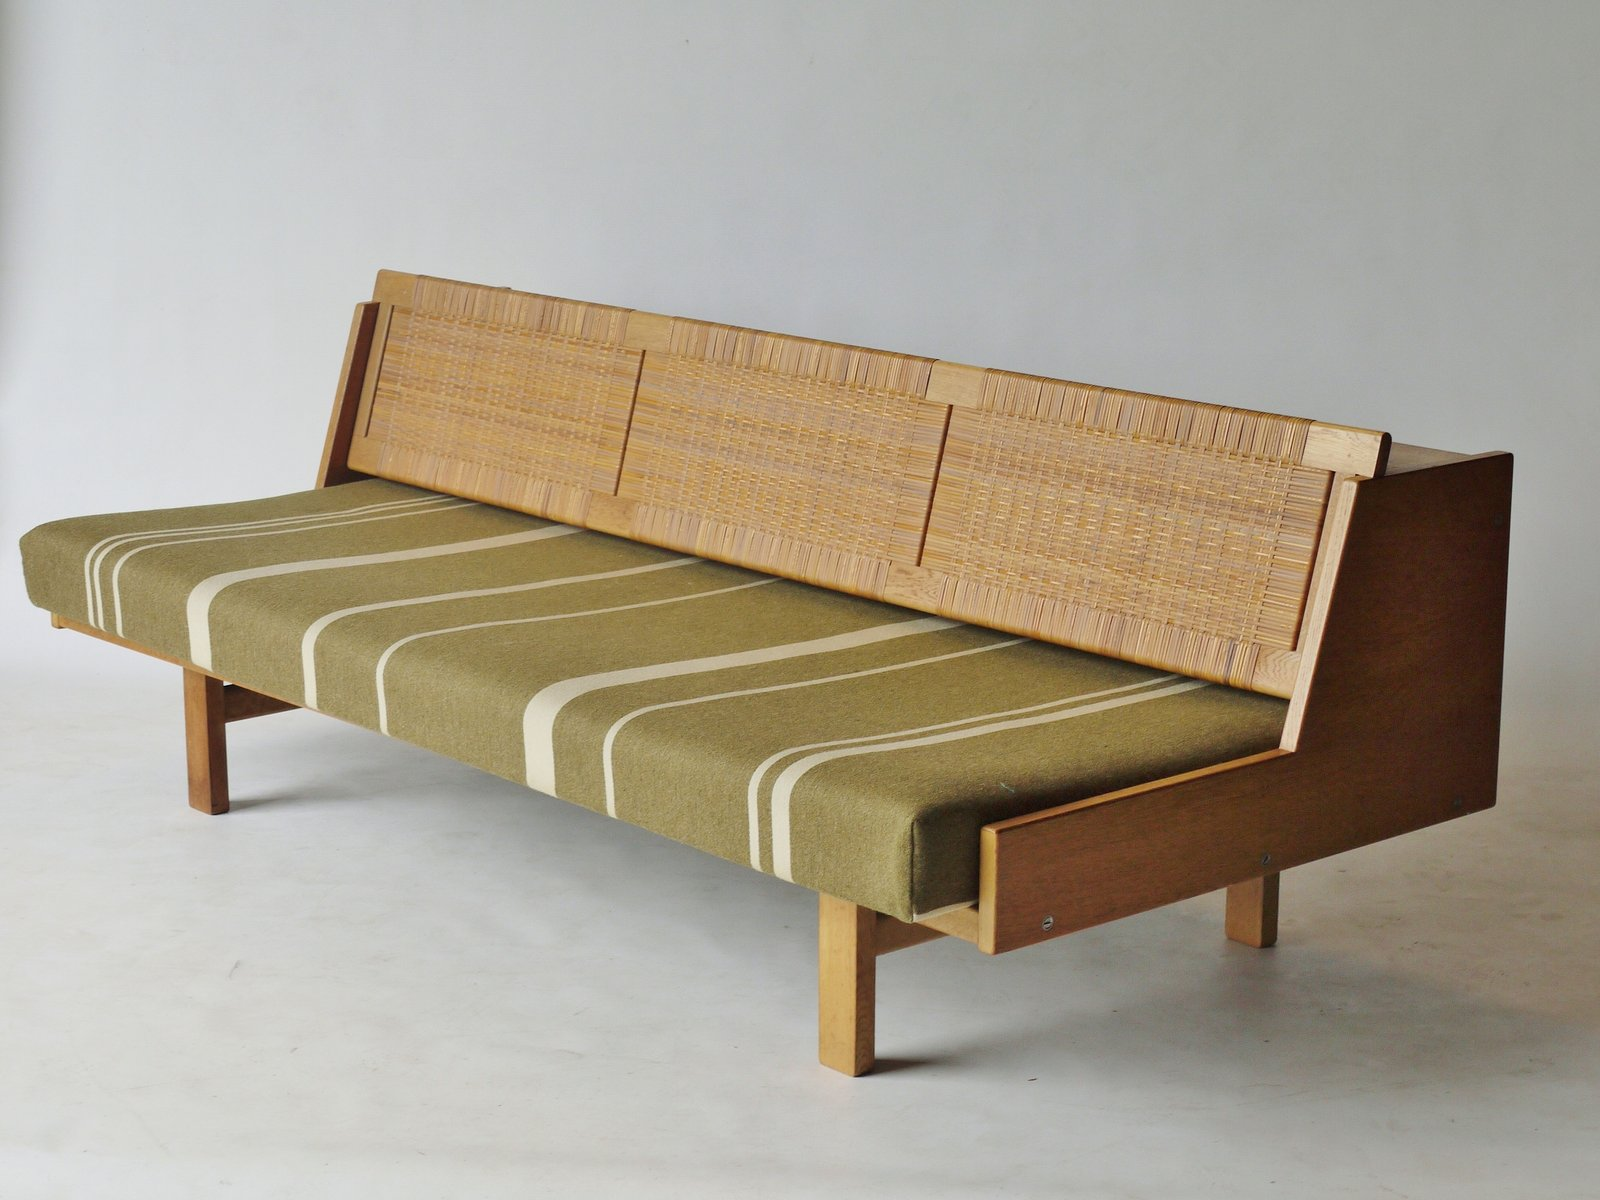 Ge 258 Sofa Bed By Hans Wegner For Getama 1950s For Sale